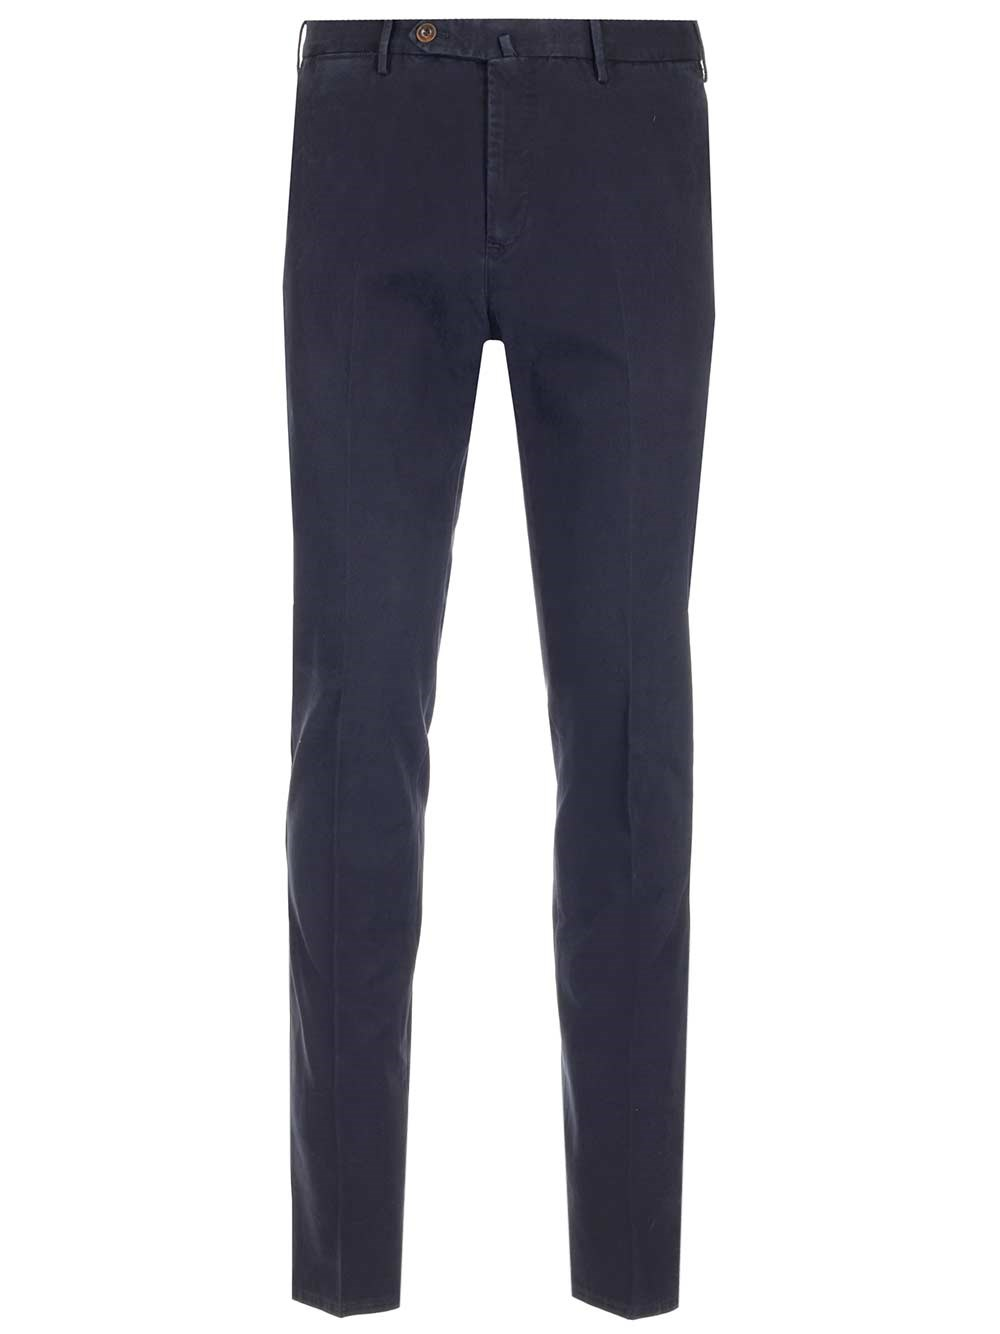 PT TORINO Washed Cotton Trousers